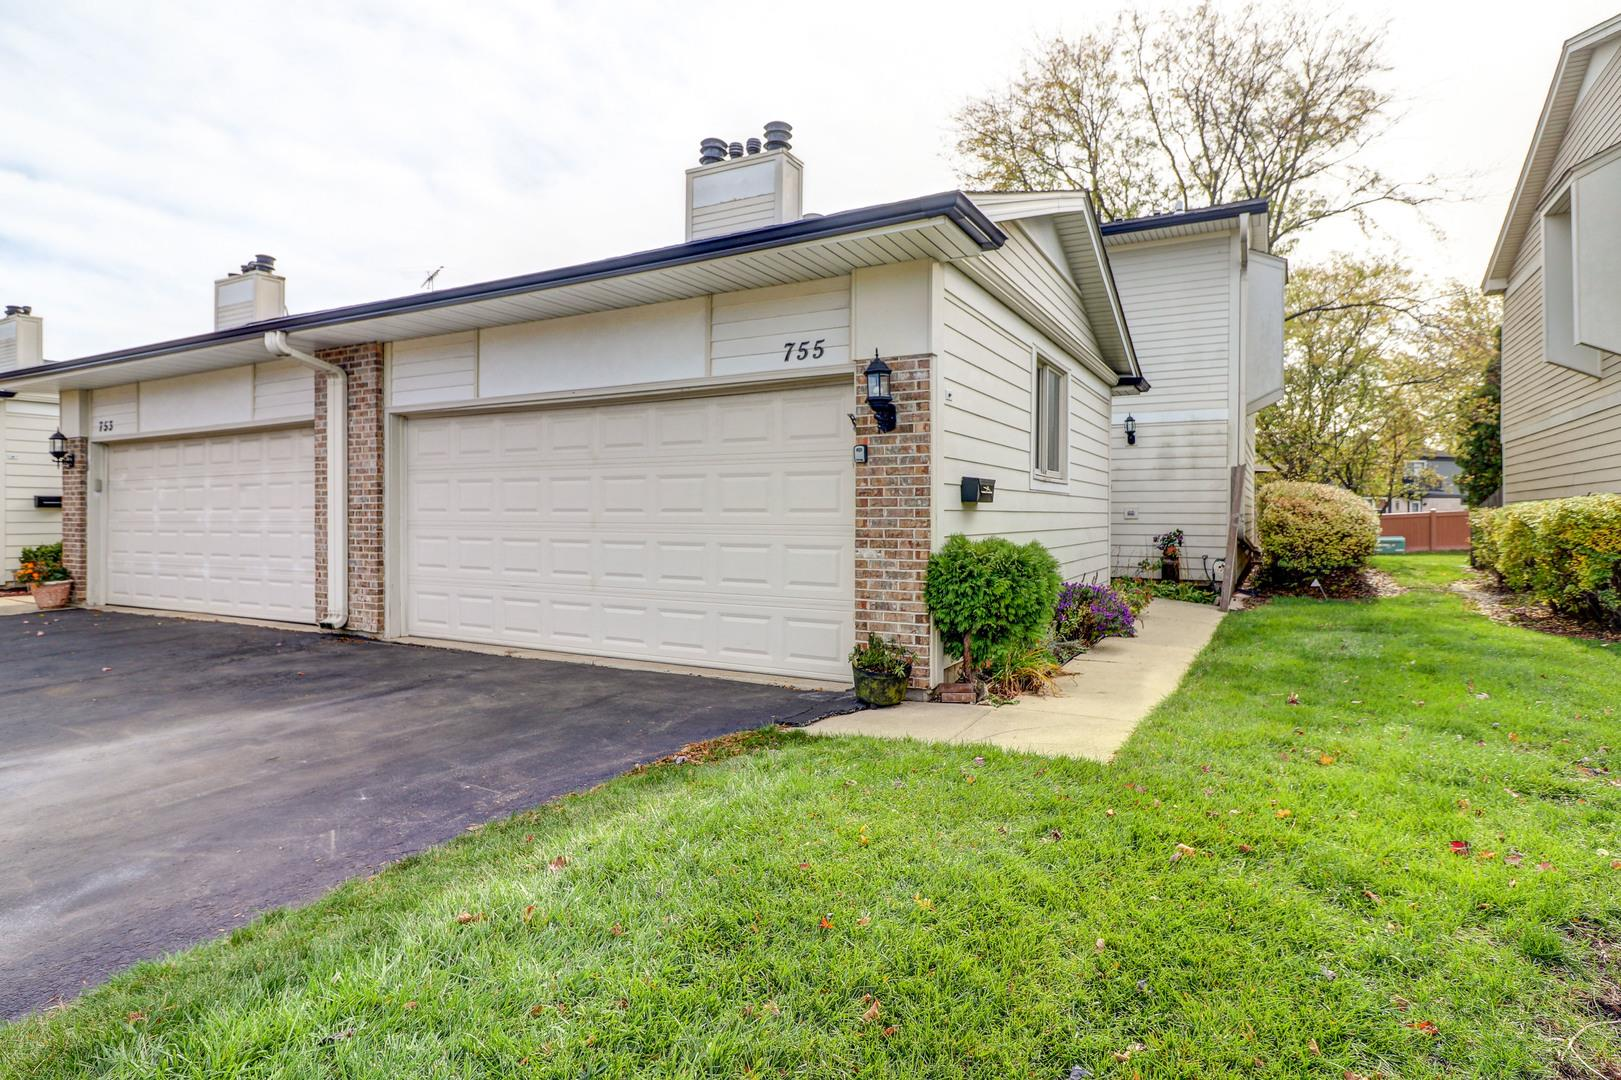 755 Grouse Court, Deerfield, IL 60015 - #: 10921517